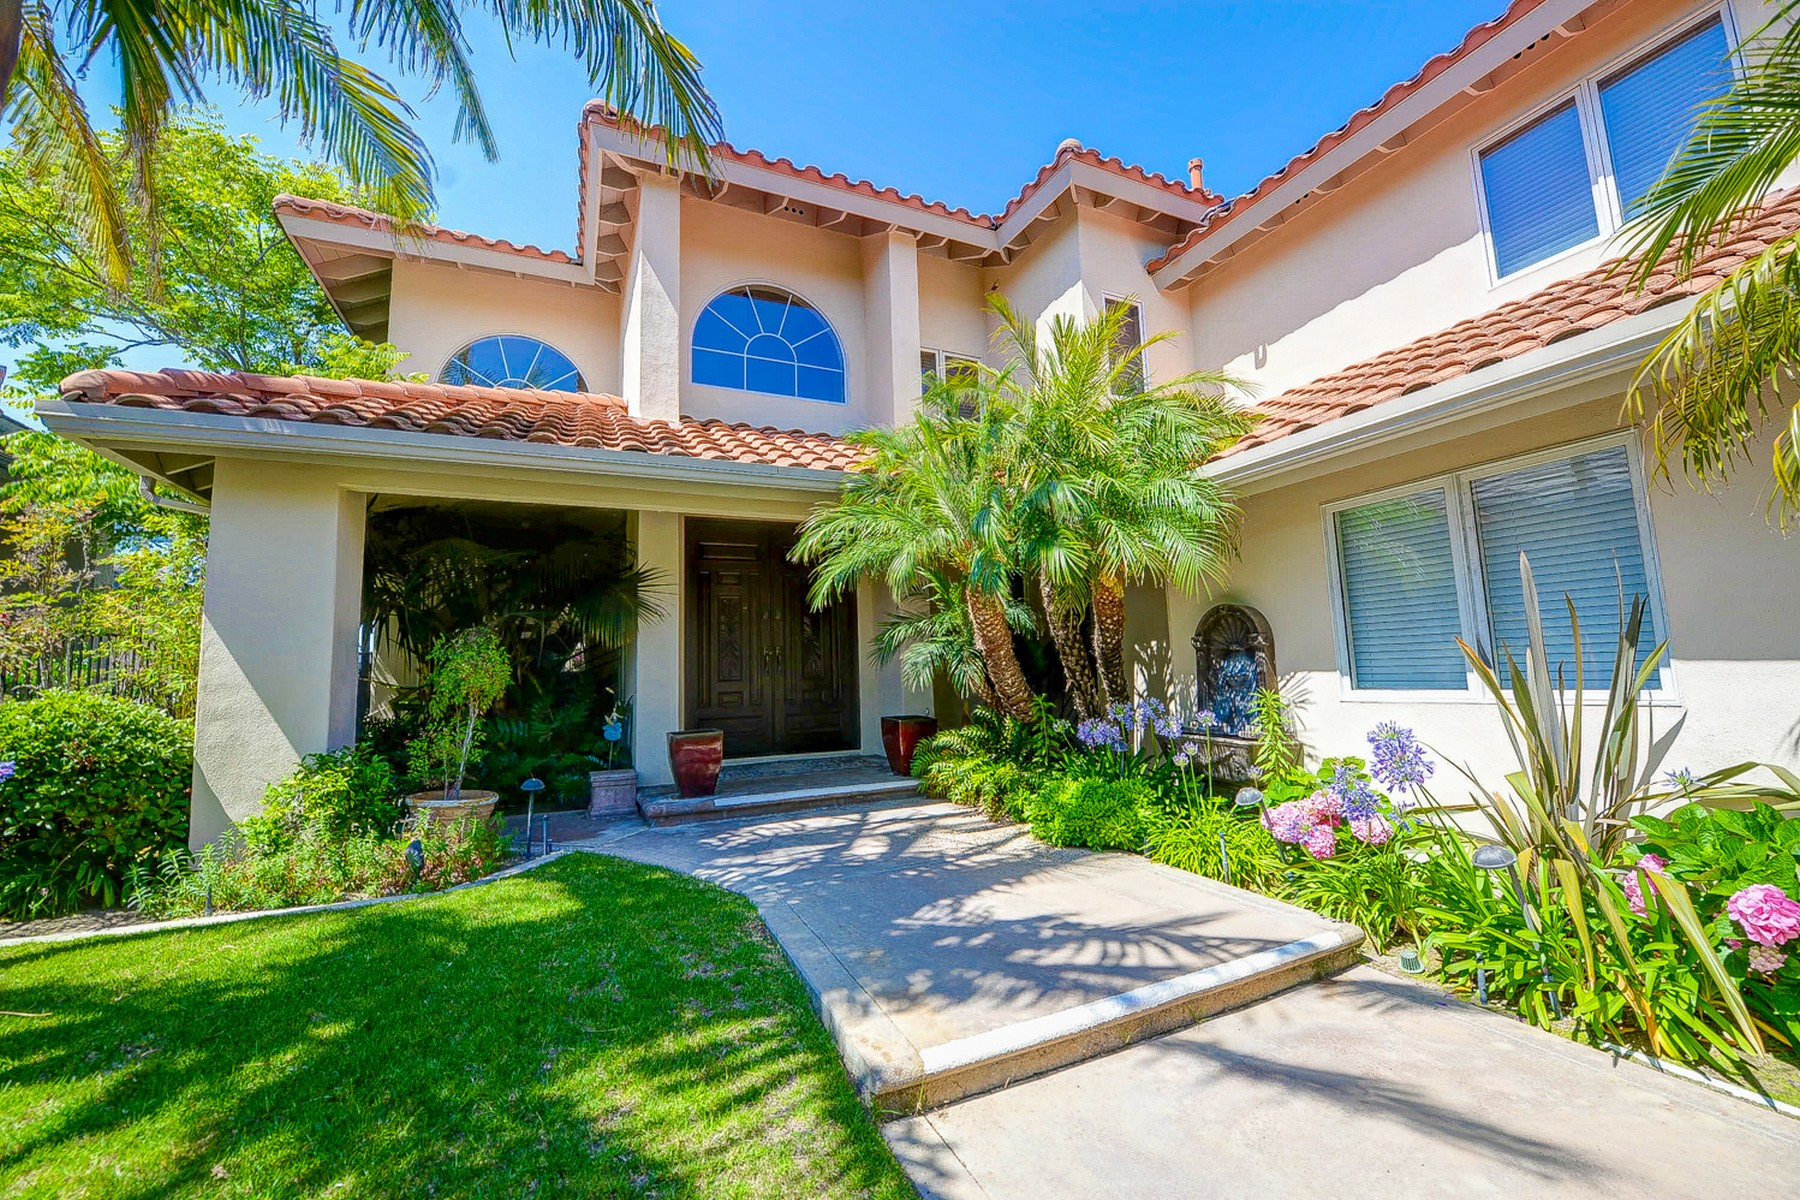 Single Family Home for Sale at 2 Soto Grande Dr. Dana Point, 92629 United States